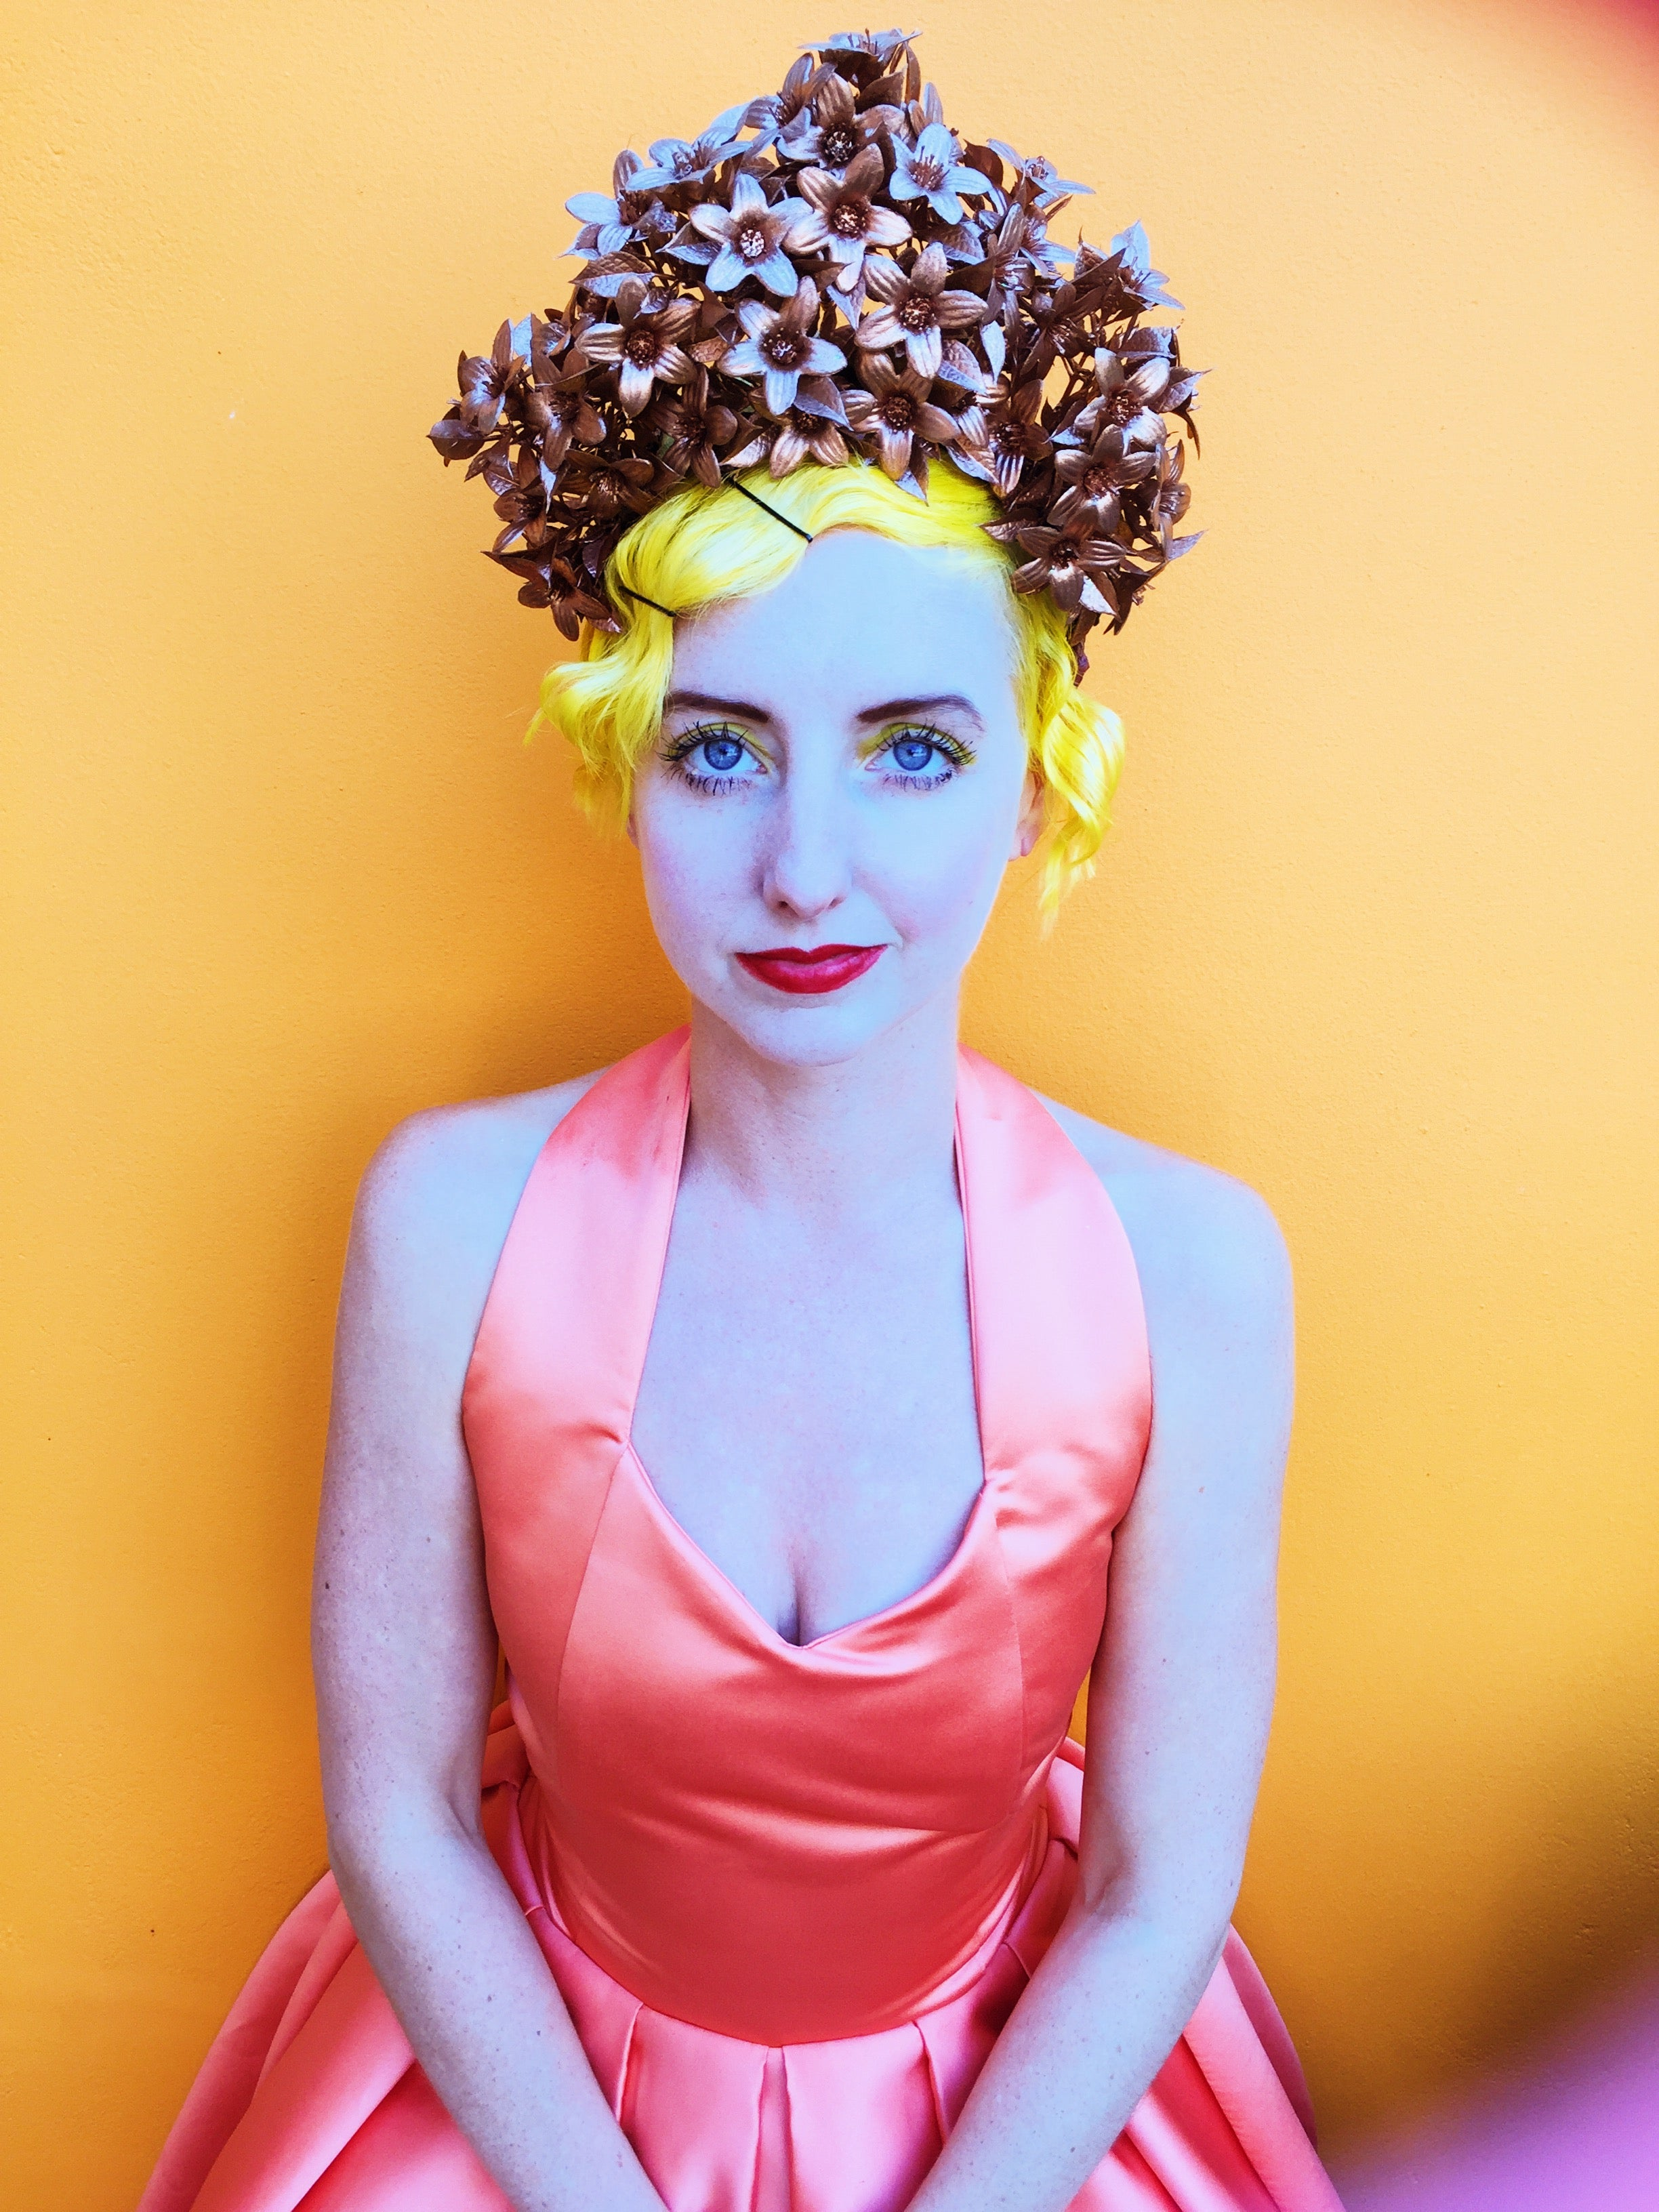 Bronze Metallic flowers crown headpiece